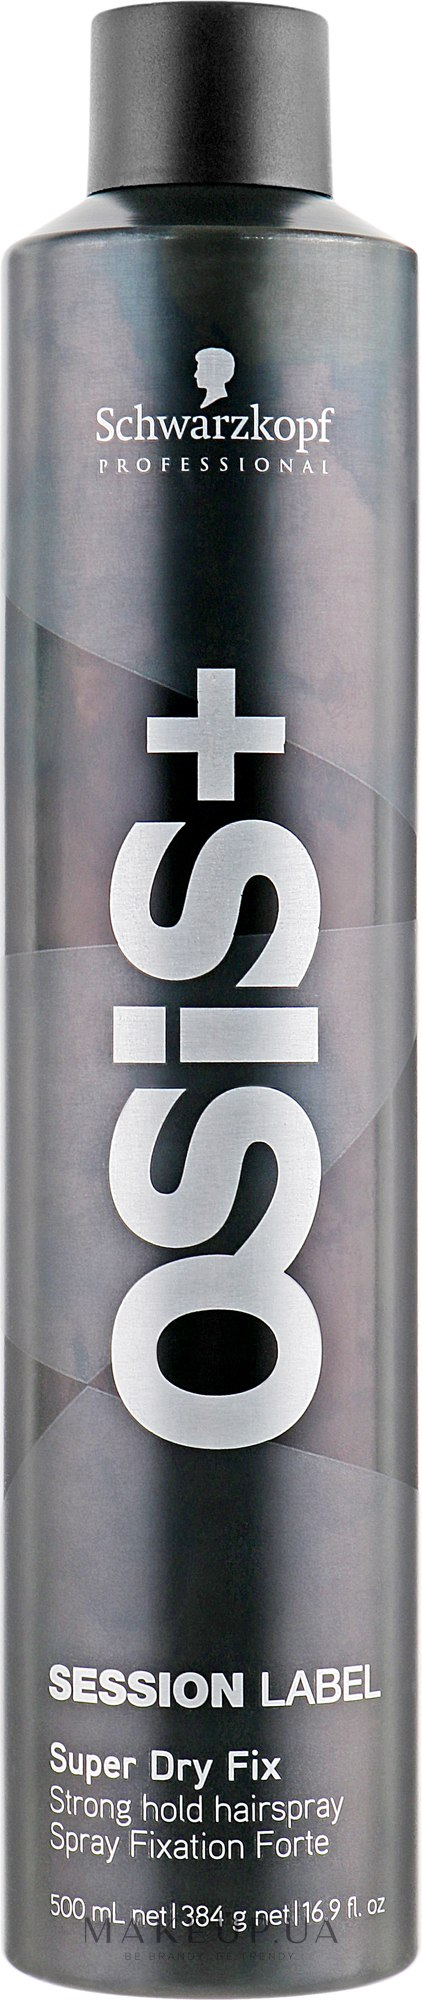 Суперсухой лак сильной фиксации - Schwarzkopf Professional OSiS+ Session Label Super Dry Fix — фото 500ml